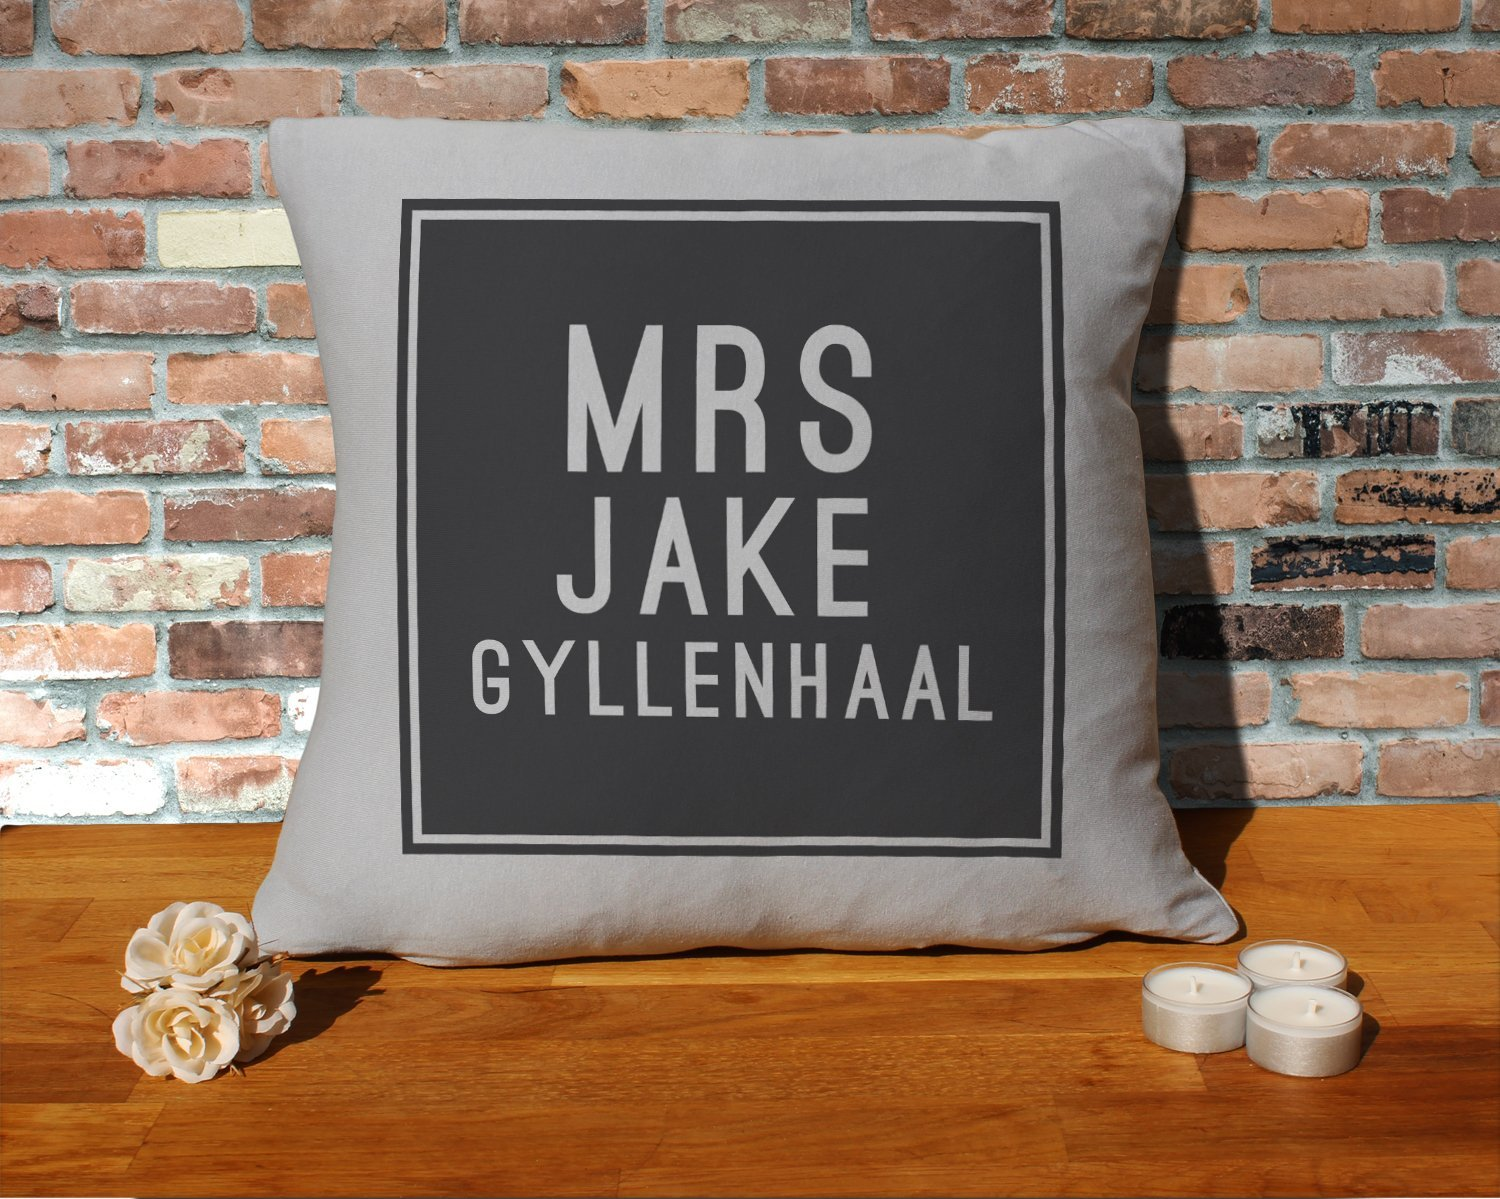 Jake Gyllenhaal Cushion Pillow - Silver Grey - 100% Cotton - Available with or without filling pad - 40x40cm (Cover and filling pad) The Stocking Fillers